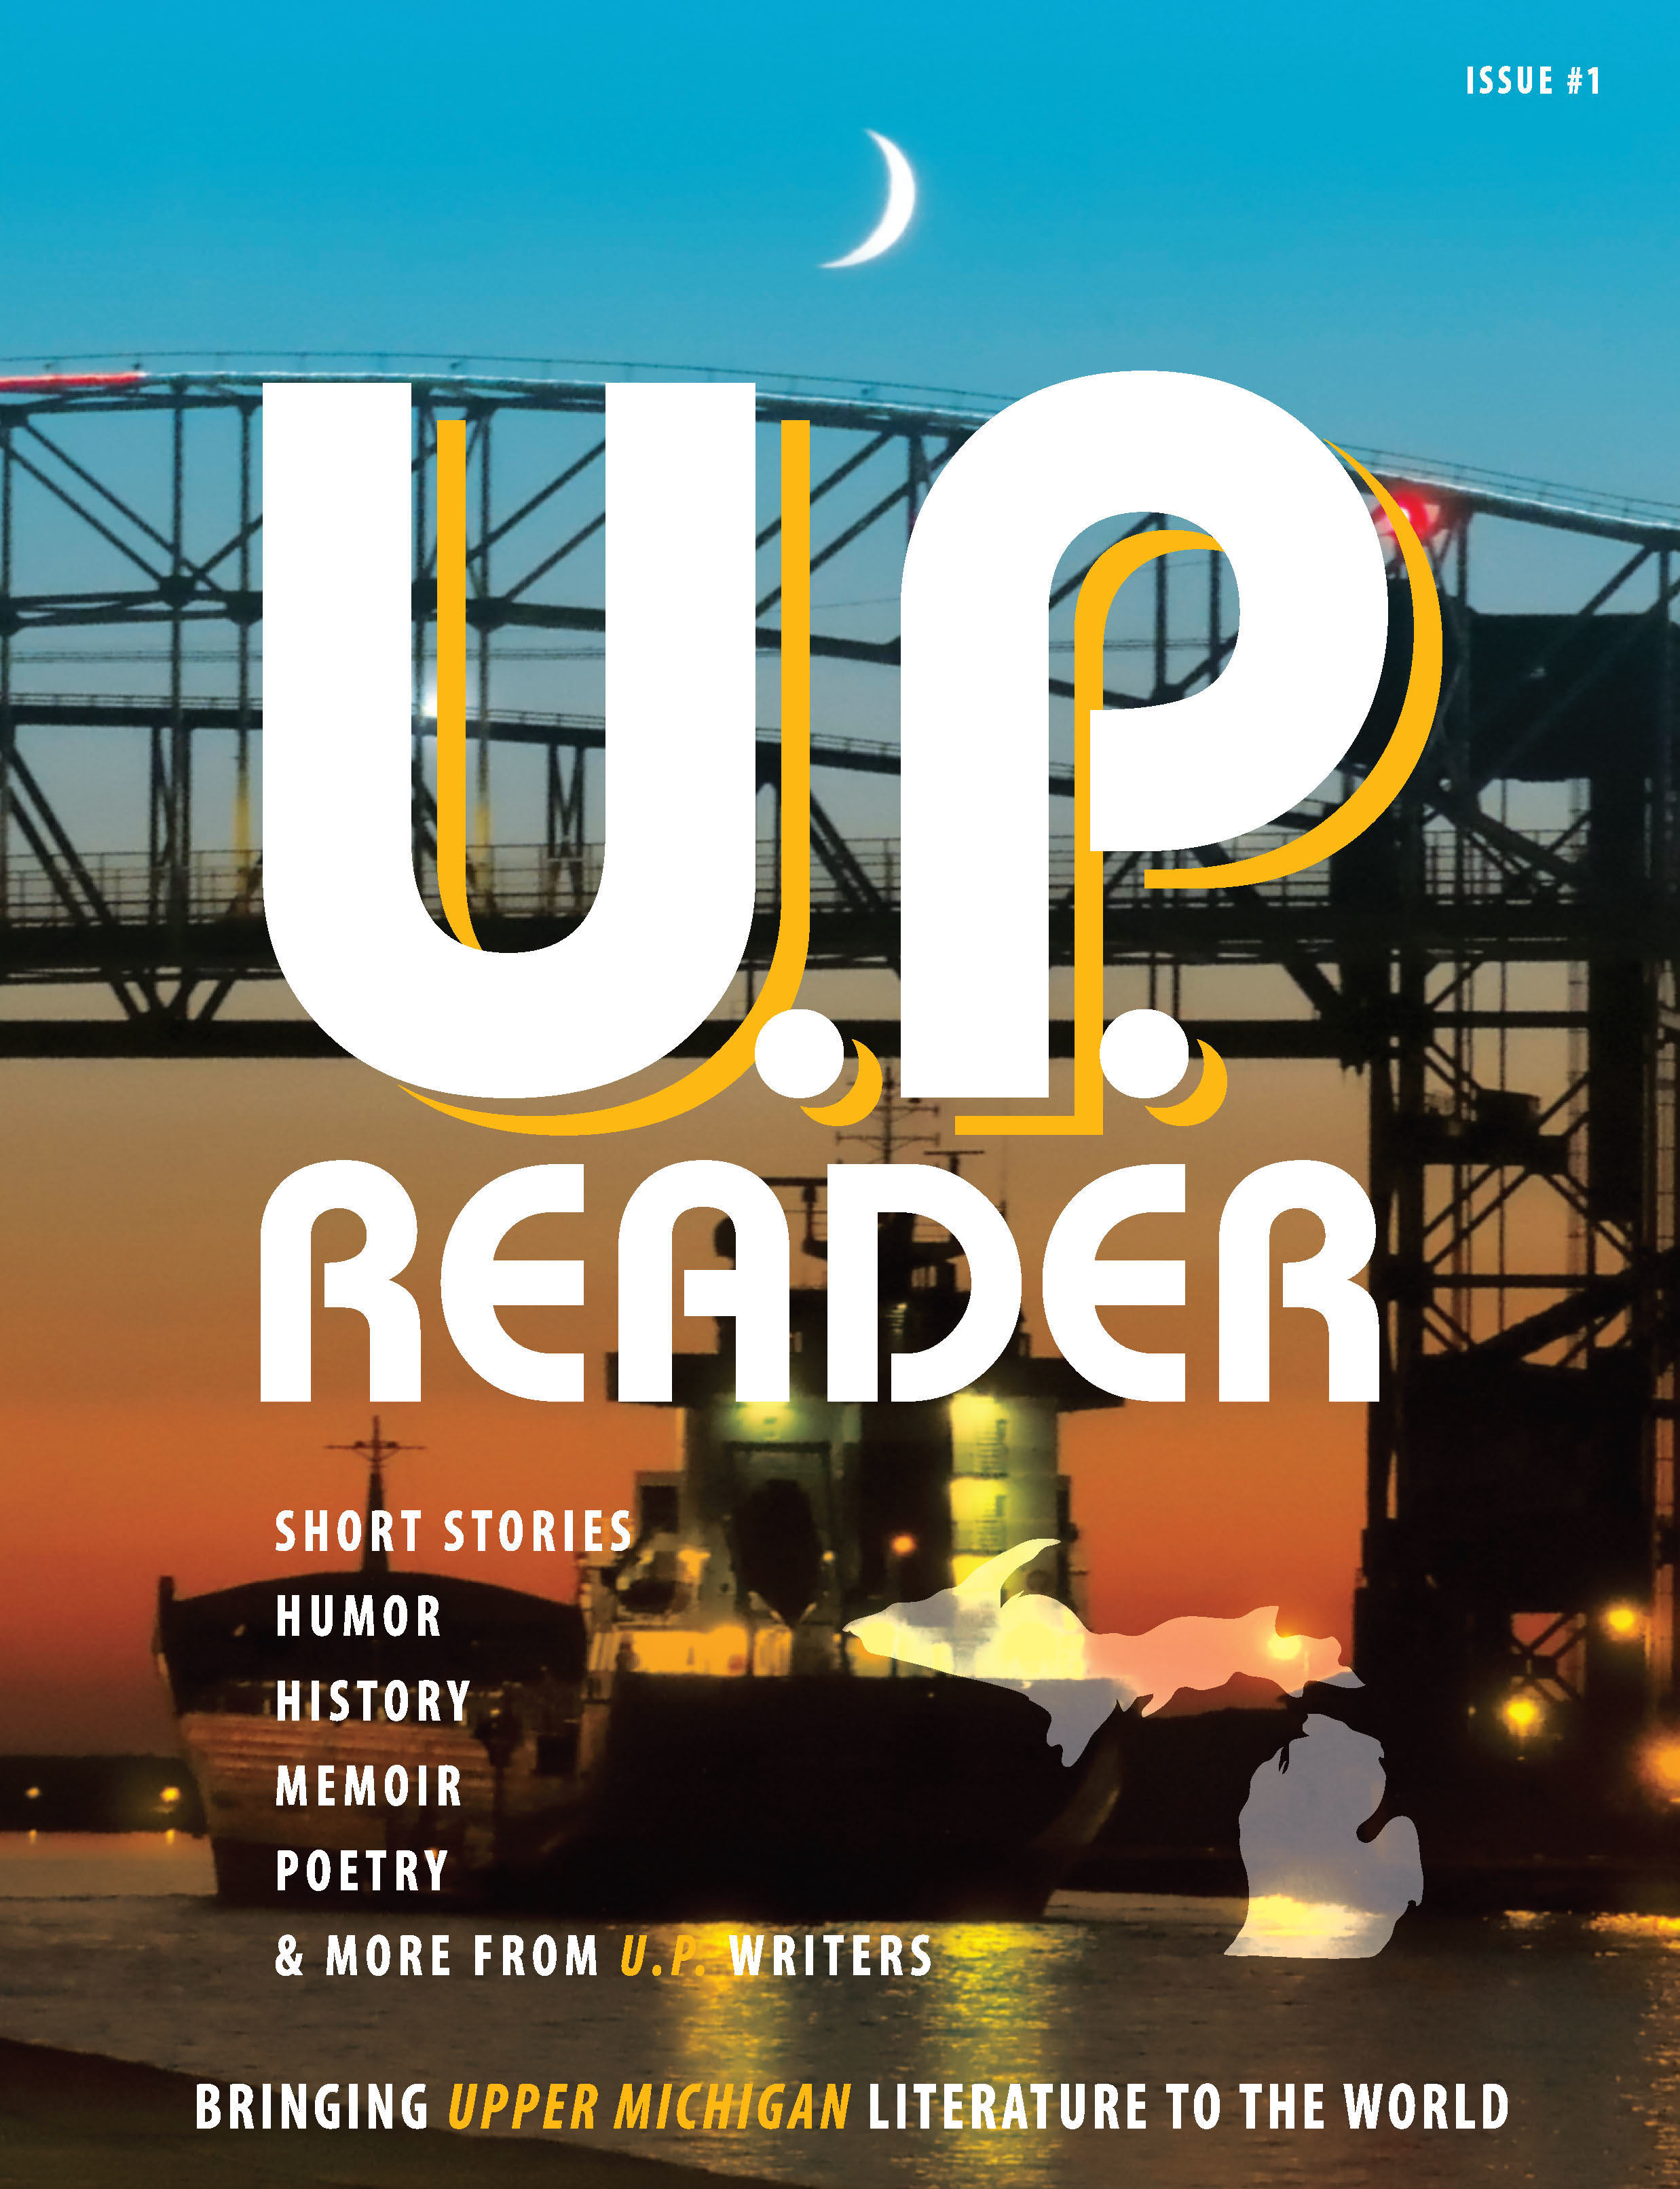 U.P. Reader -- Issue #1 [PB] 978-1-61599-336-9